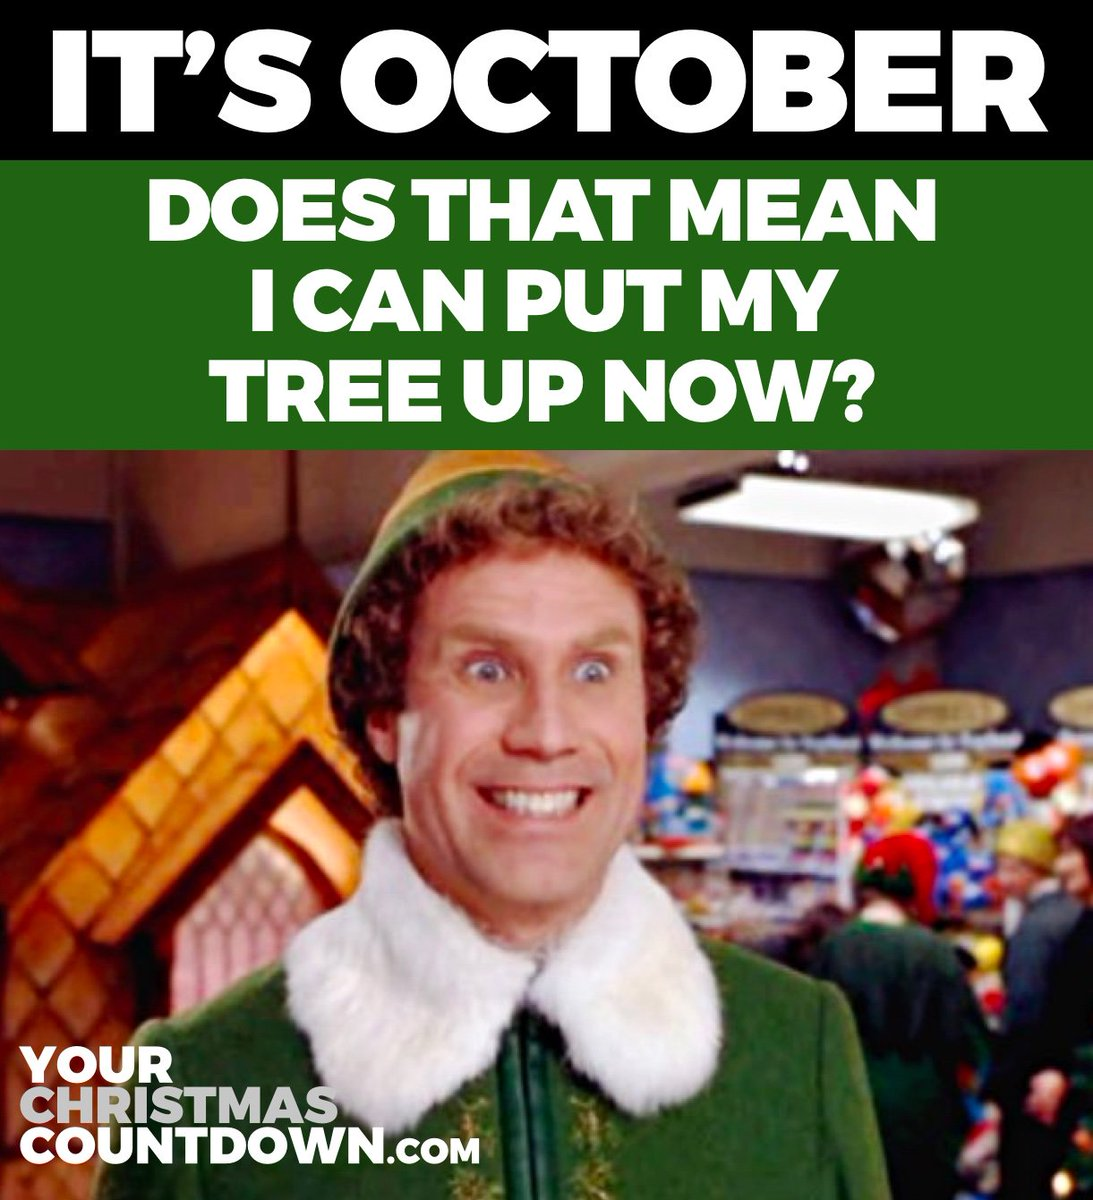 Countdown To Christmas Meme.Your Christmas Countdown On Twitter Can I Put My Tree Up